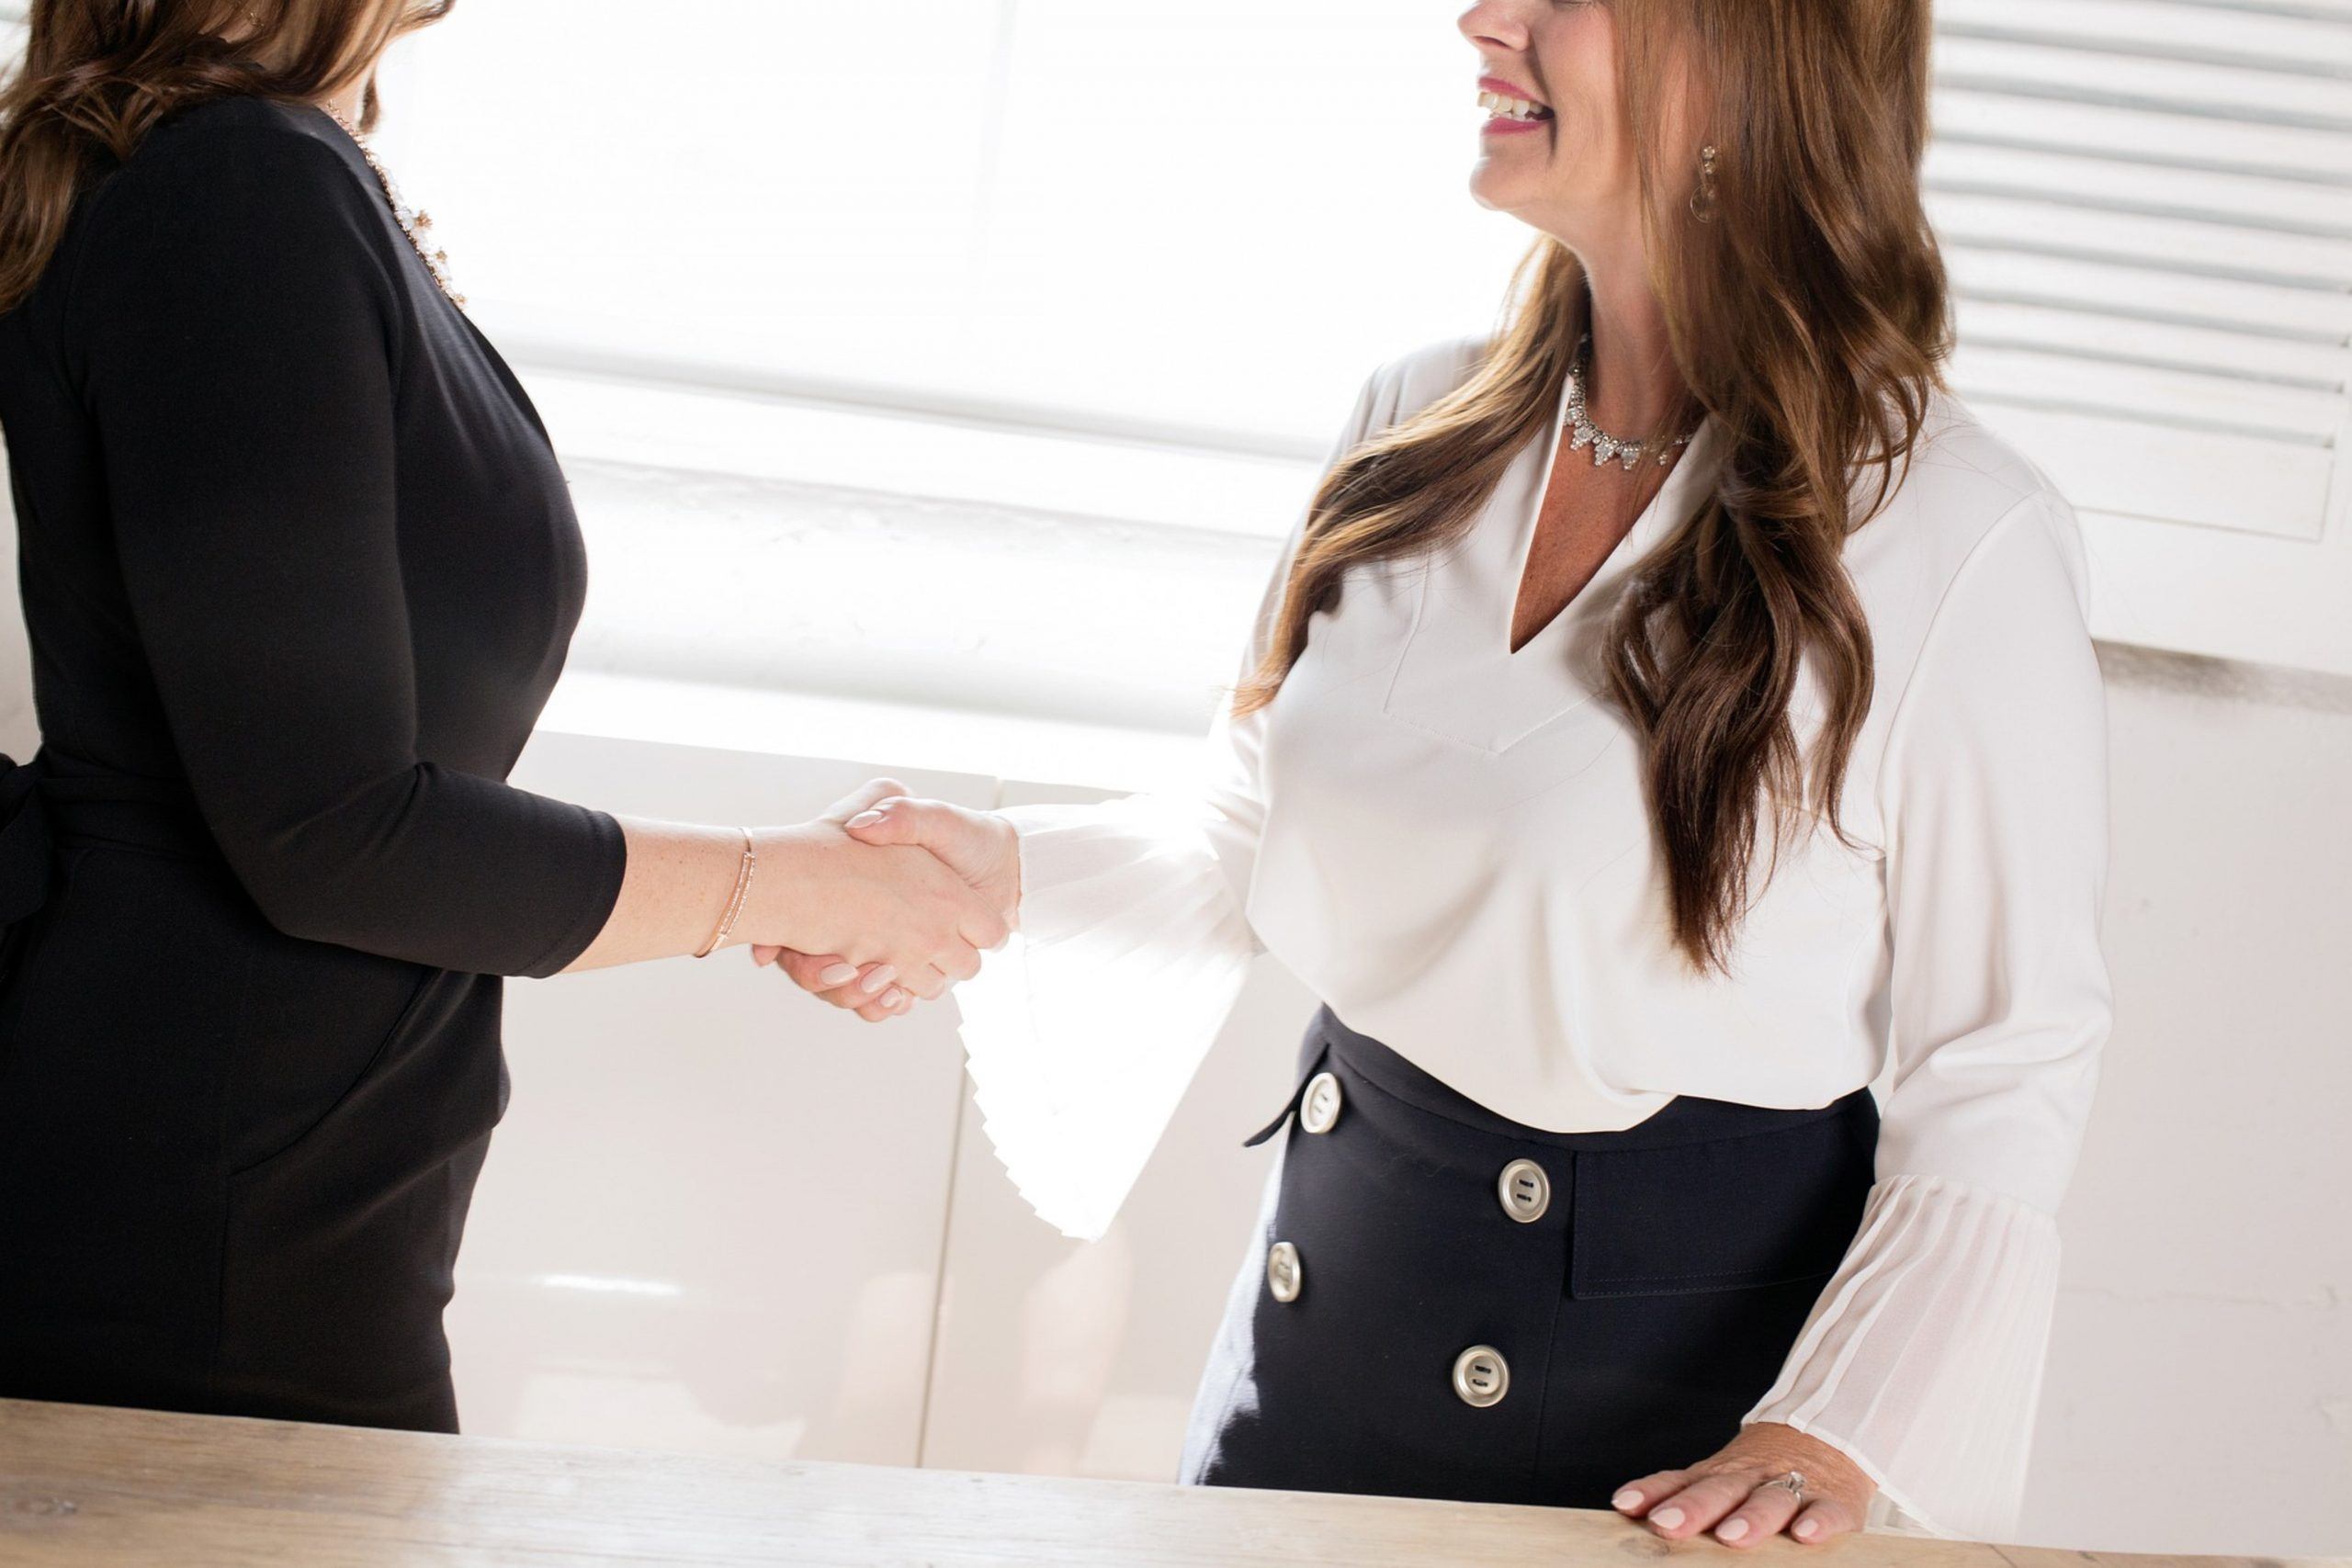 Choose your realtor wisely – it could be one of your most important long-term relationships